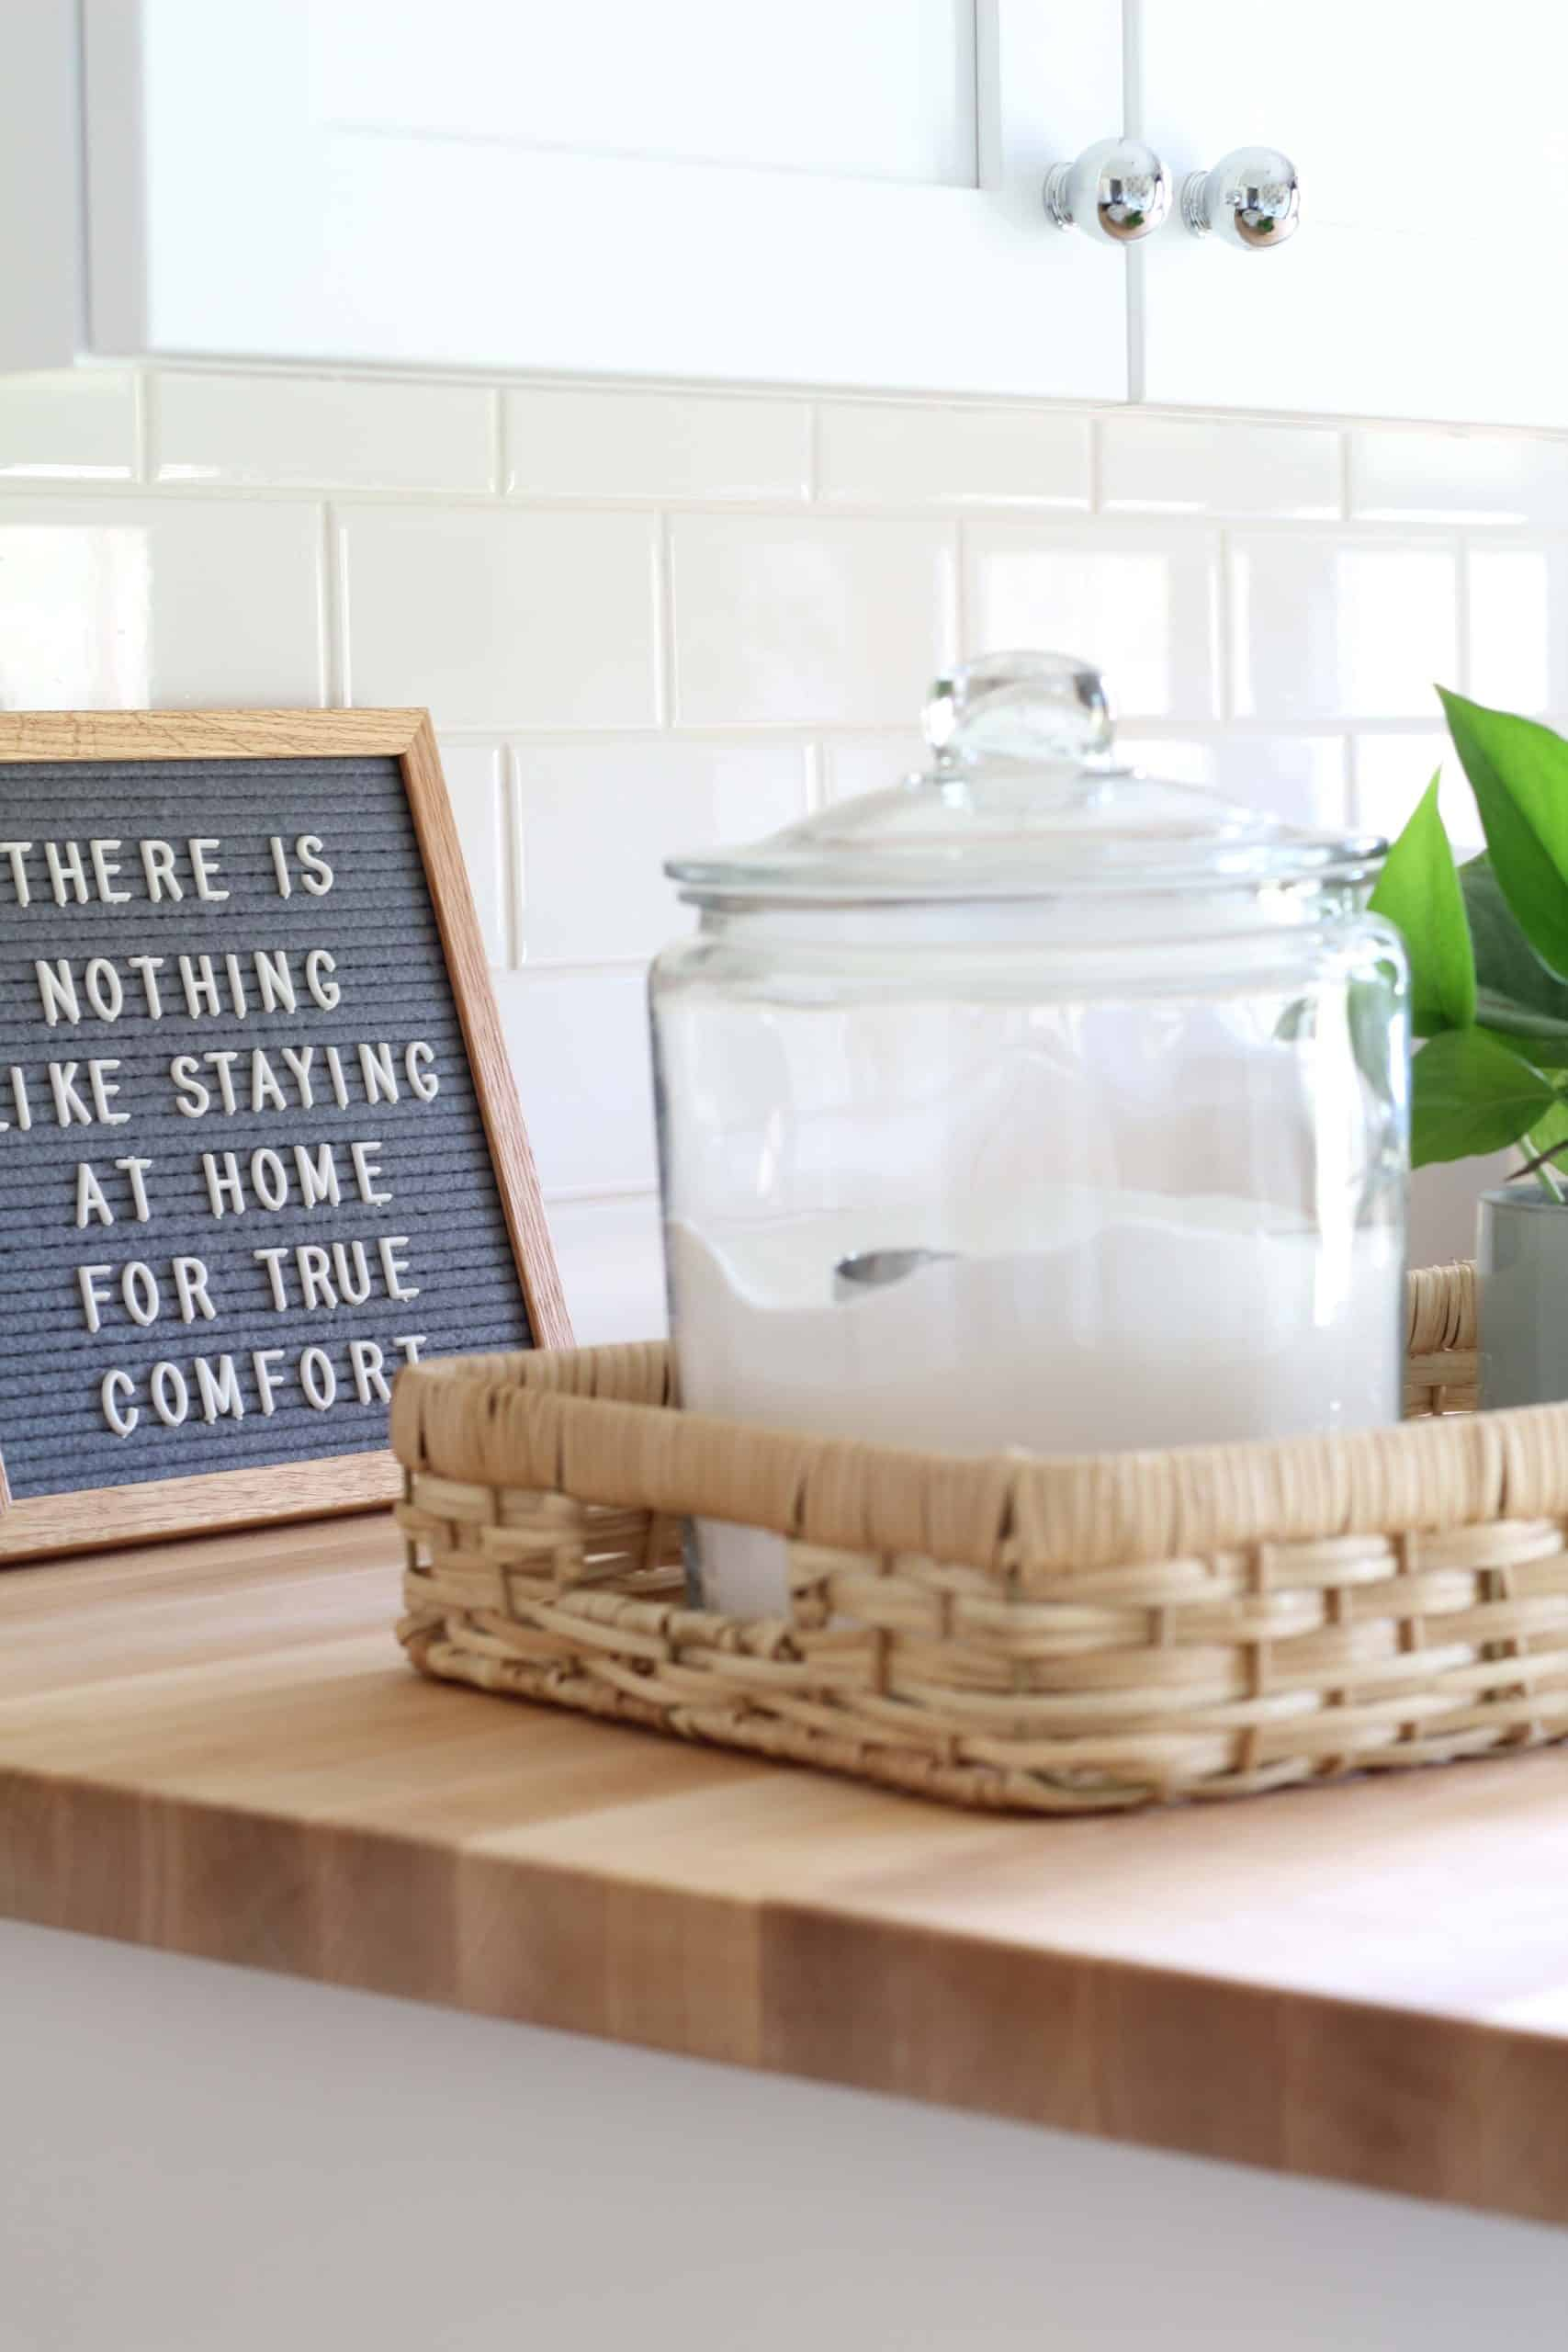 gray felt letter board, glass canister with laundry soap, maple butcher block countertops